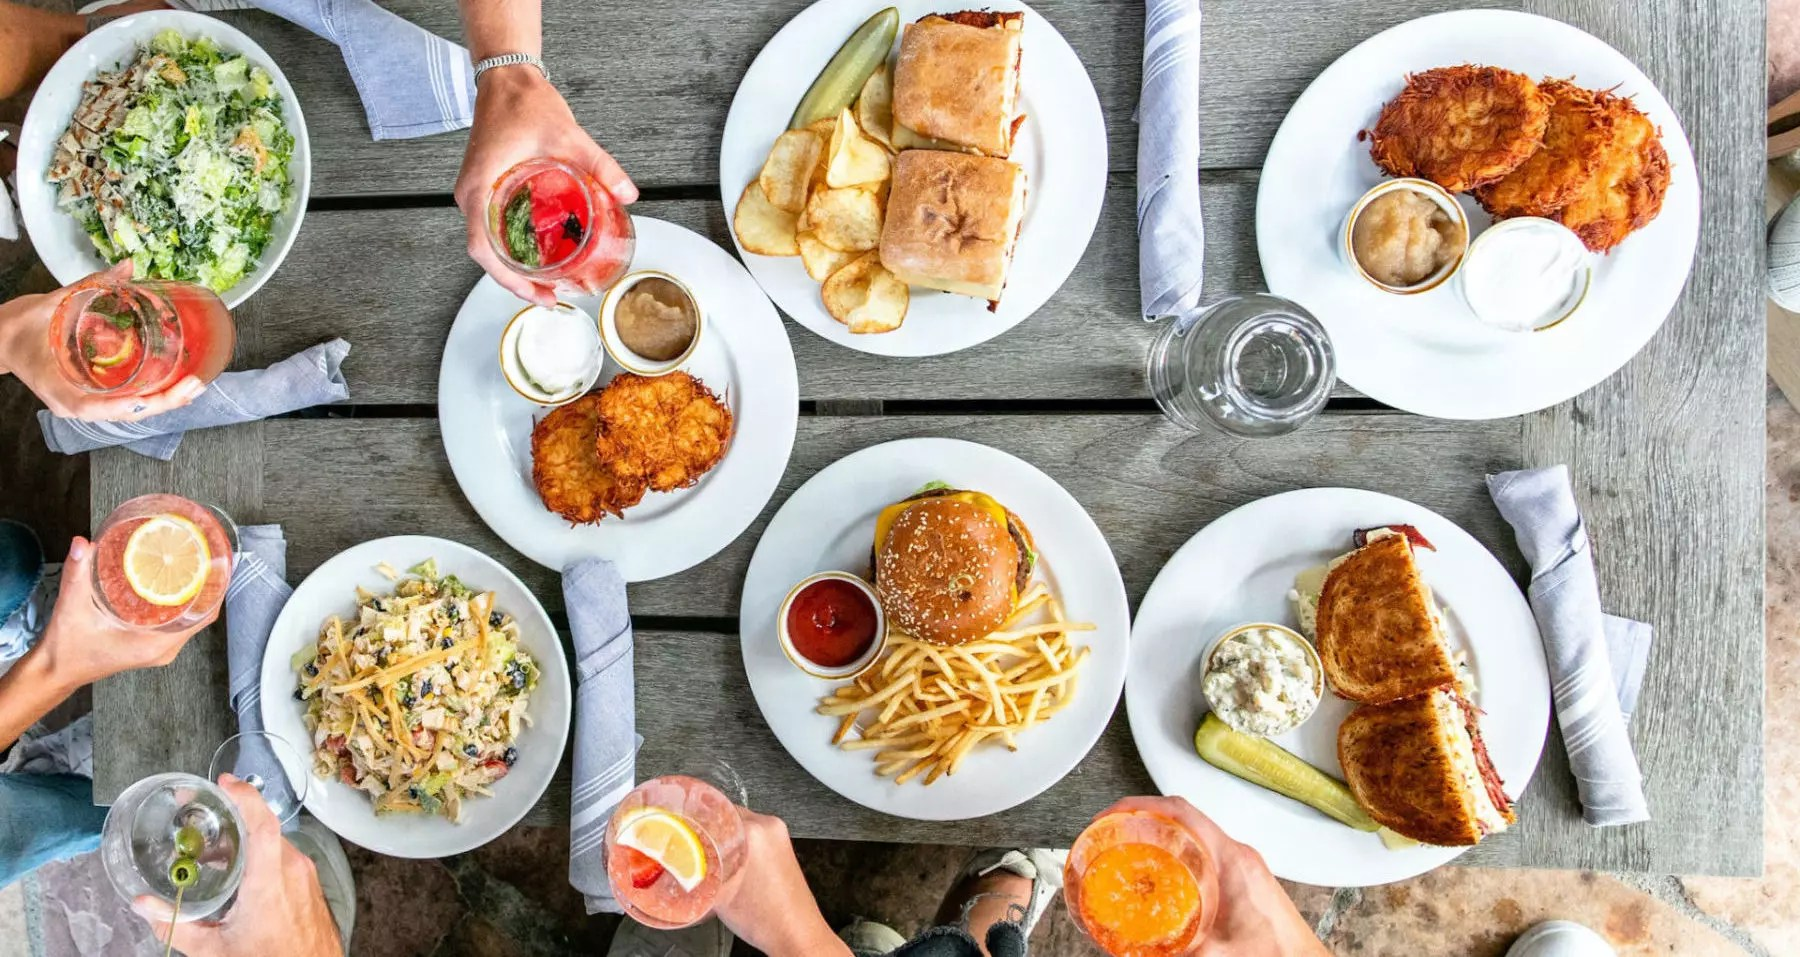 https localemagazine com icymi marina del reys jerrys deli is back with patio seating pastrami sandwiches and a fresh feel